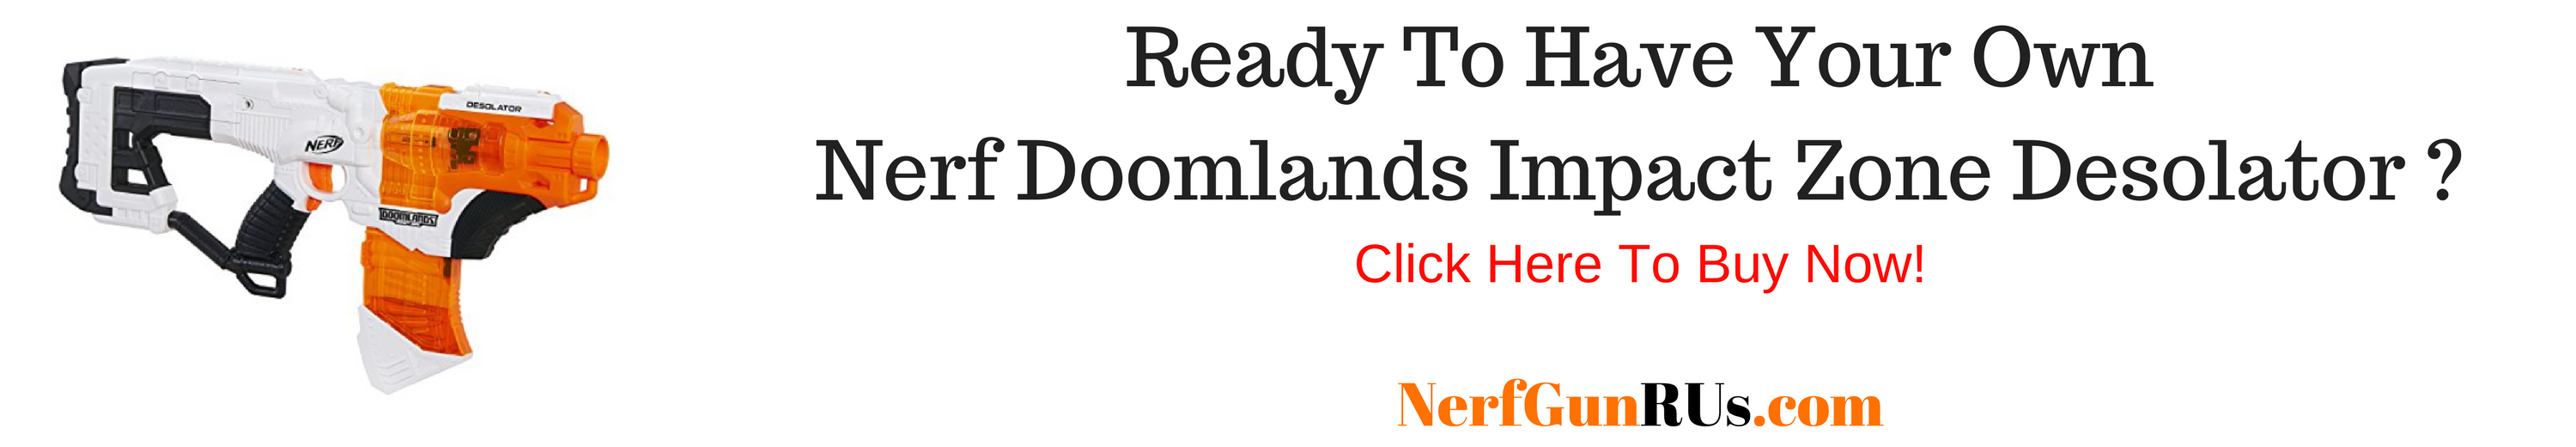 Ready To Have Your Own Nerf Doomlands Impact Zone Desolator | NerfGunRUs.com